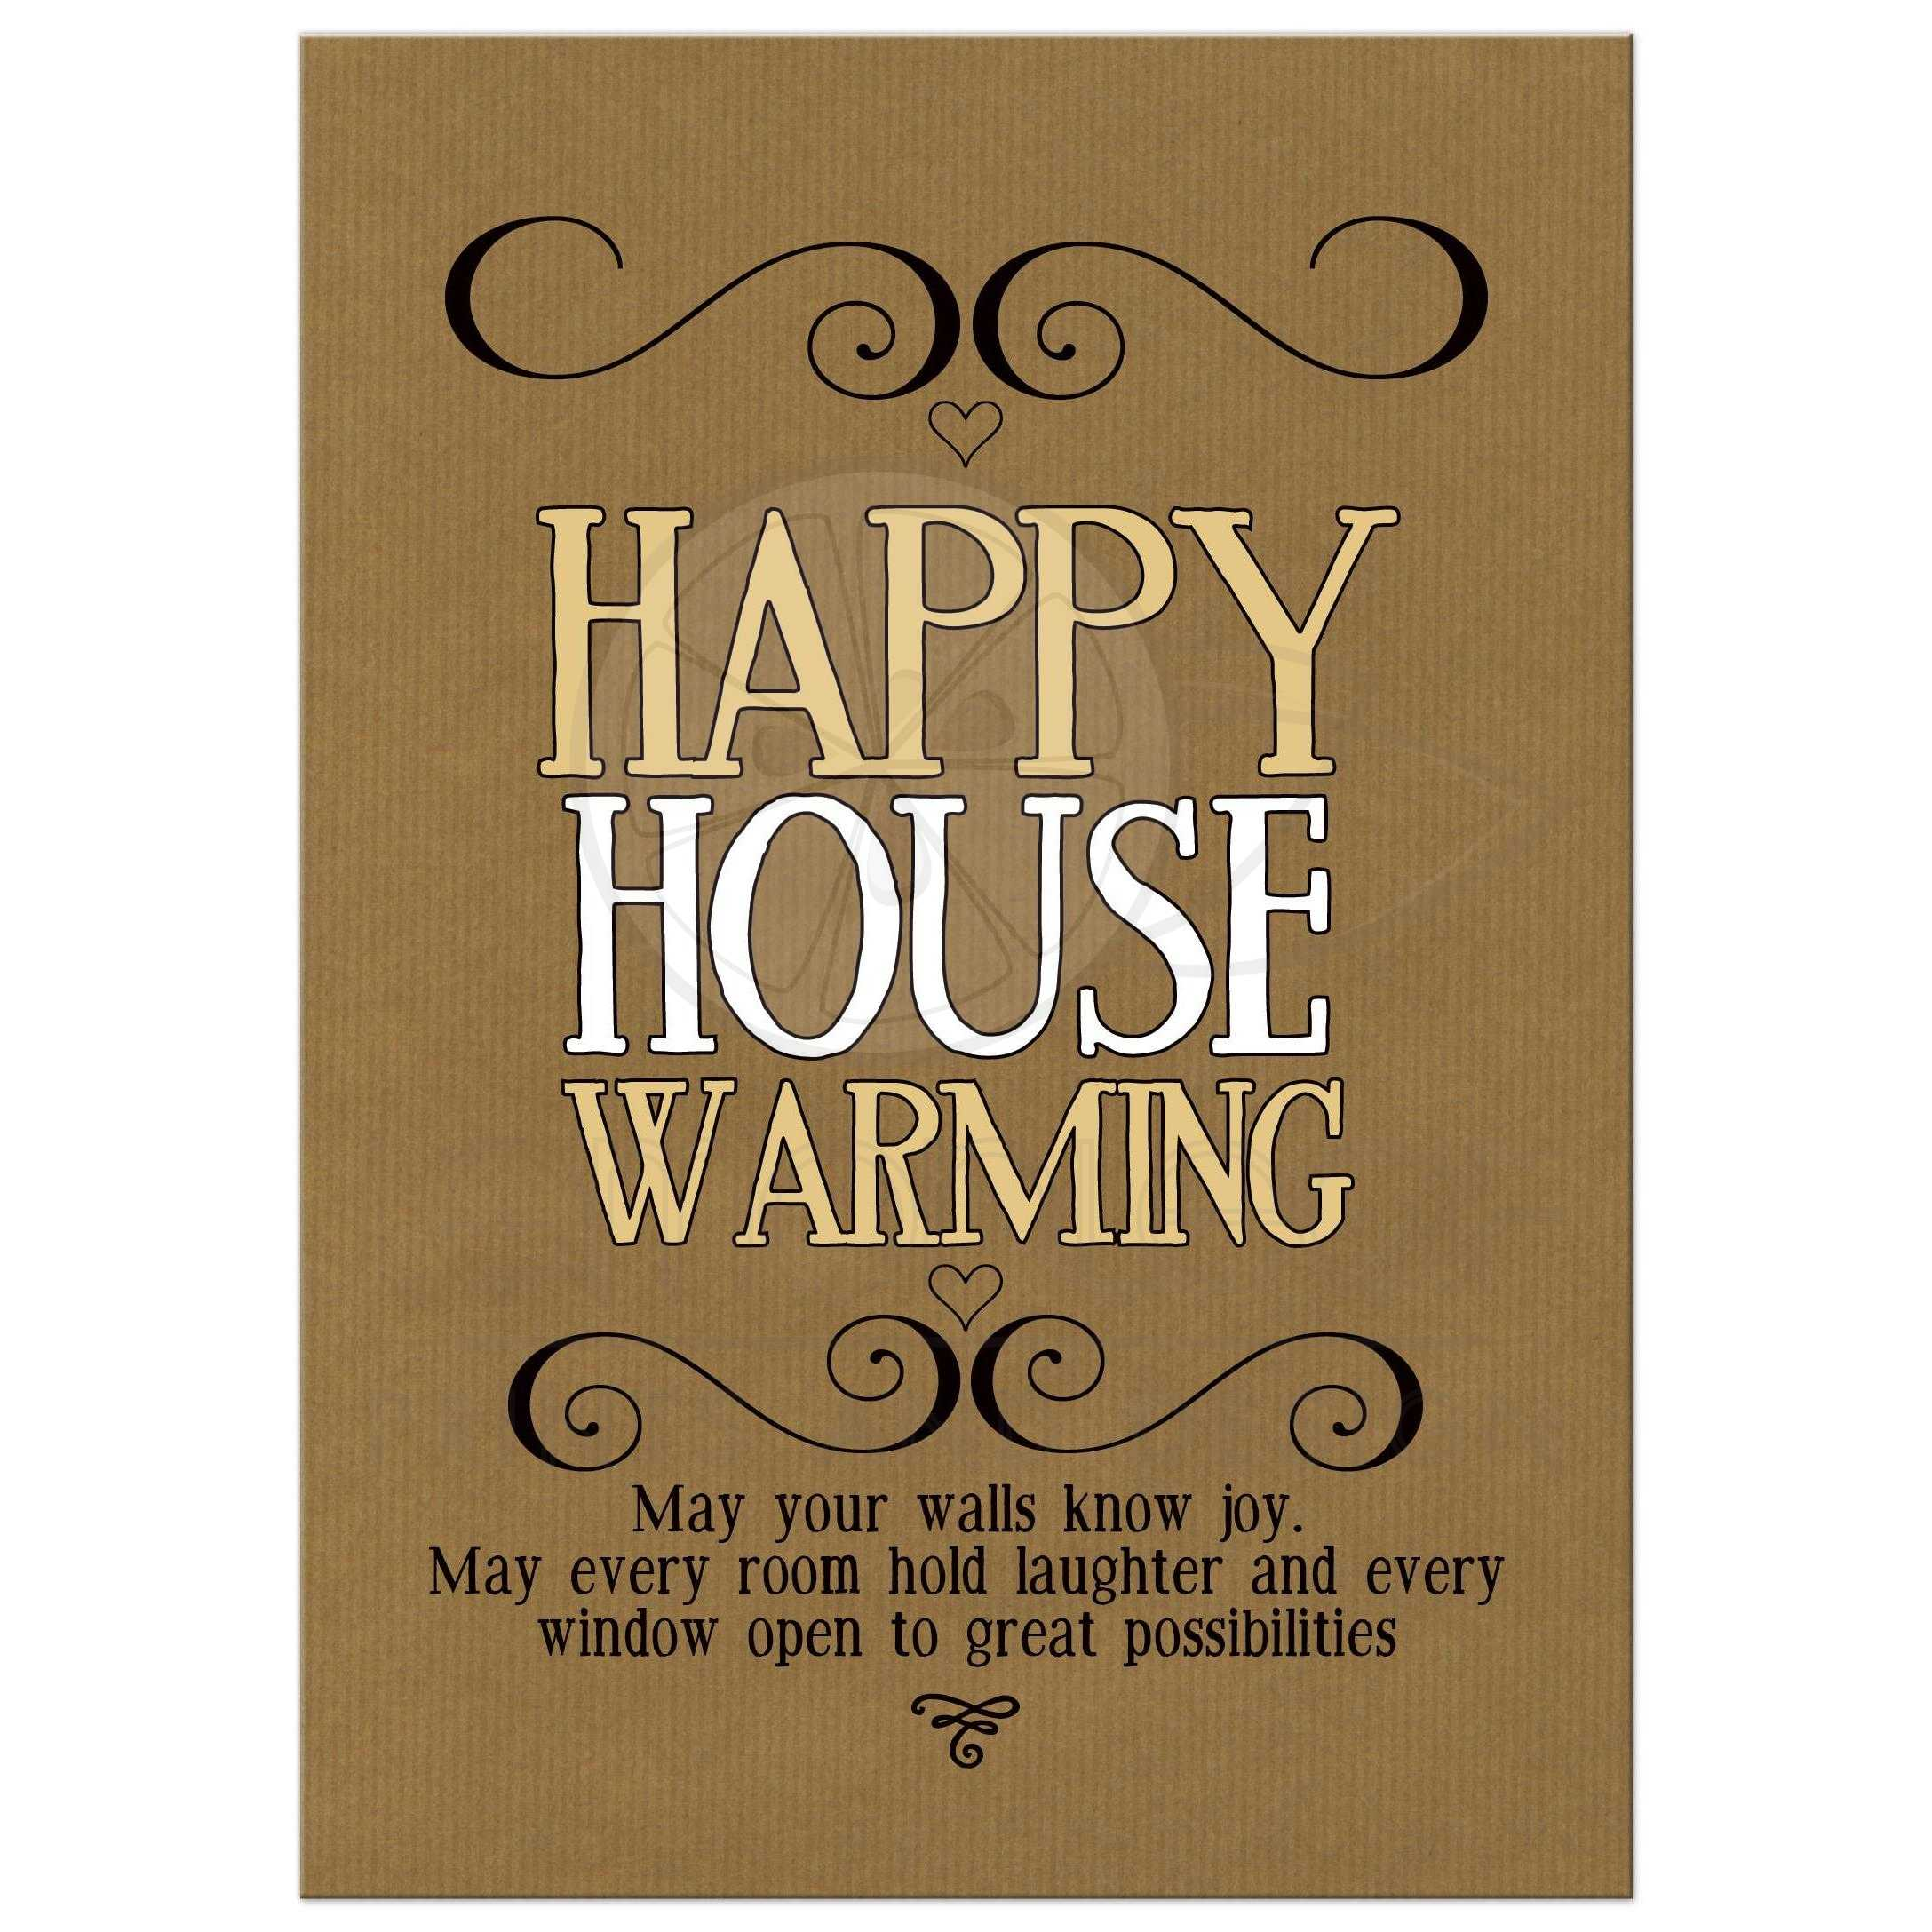 Happy housewarming wishes card hipster house warming m4hsunfo